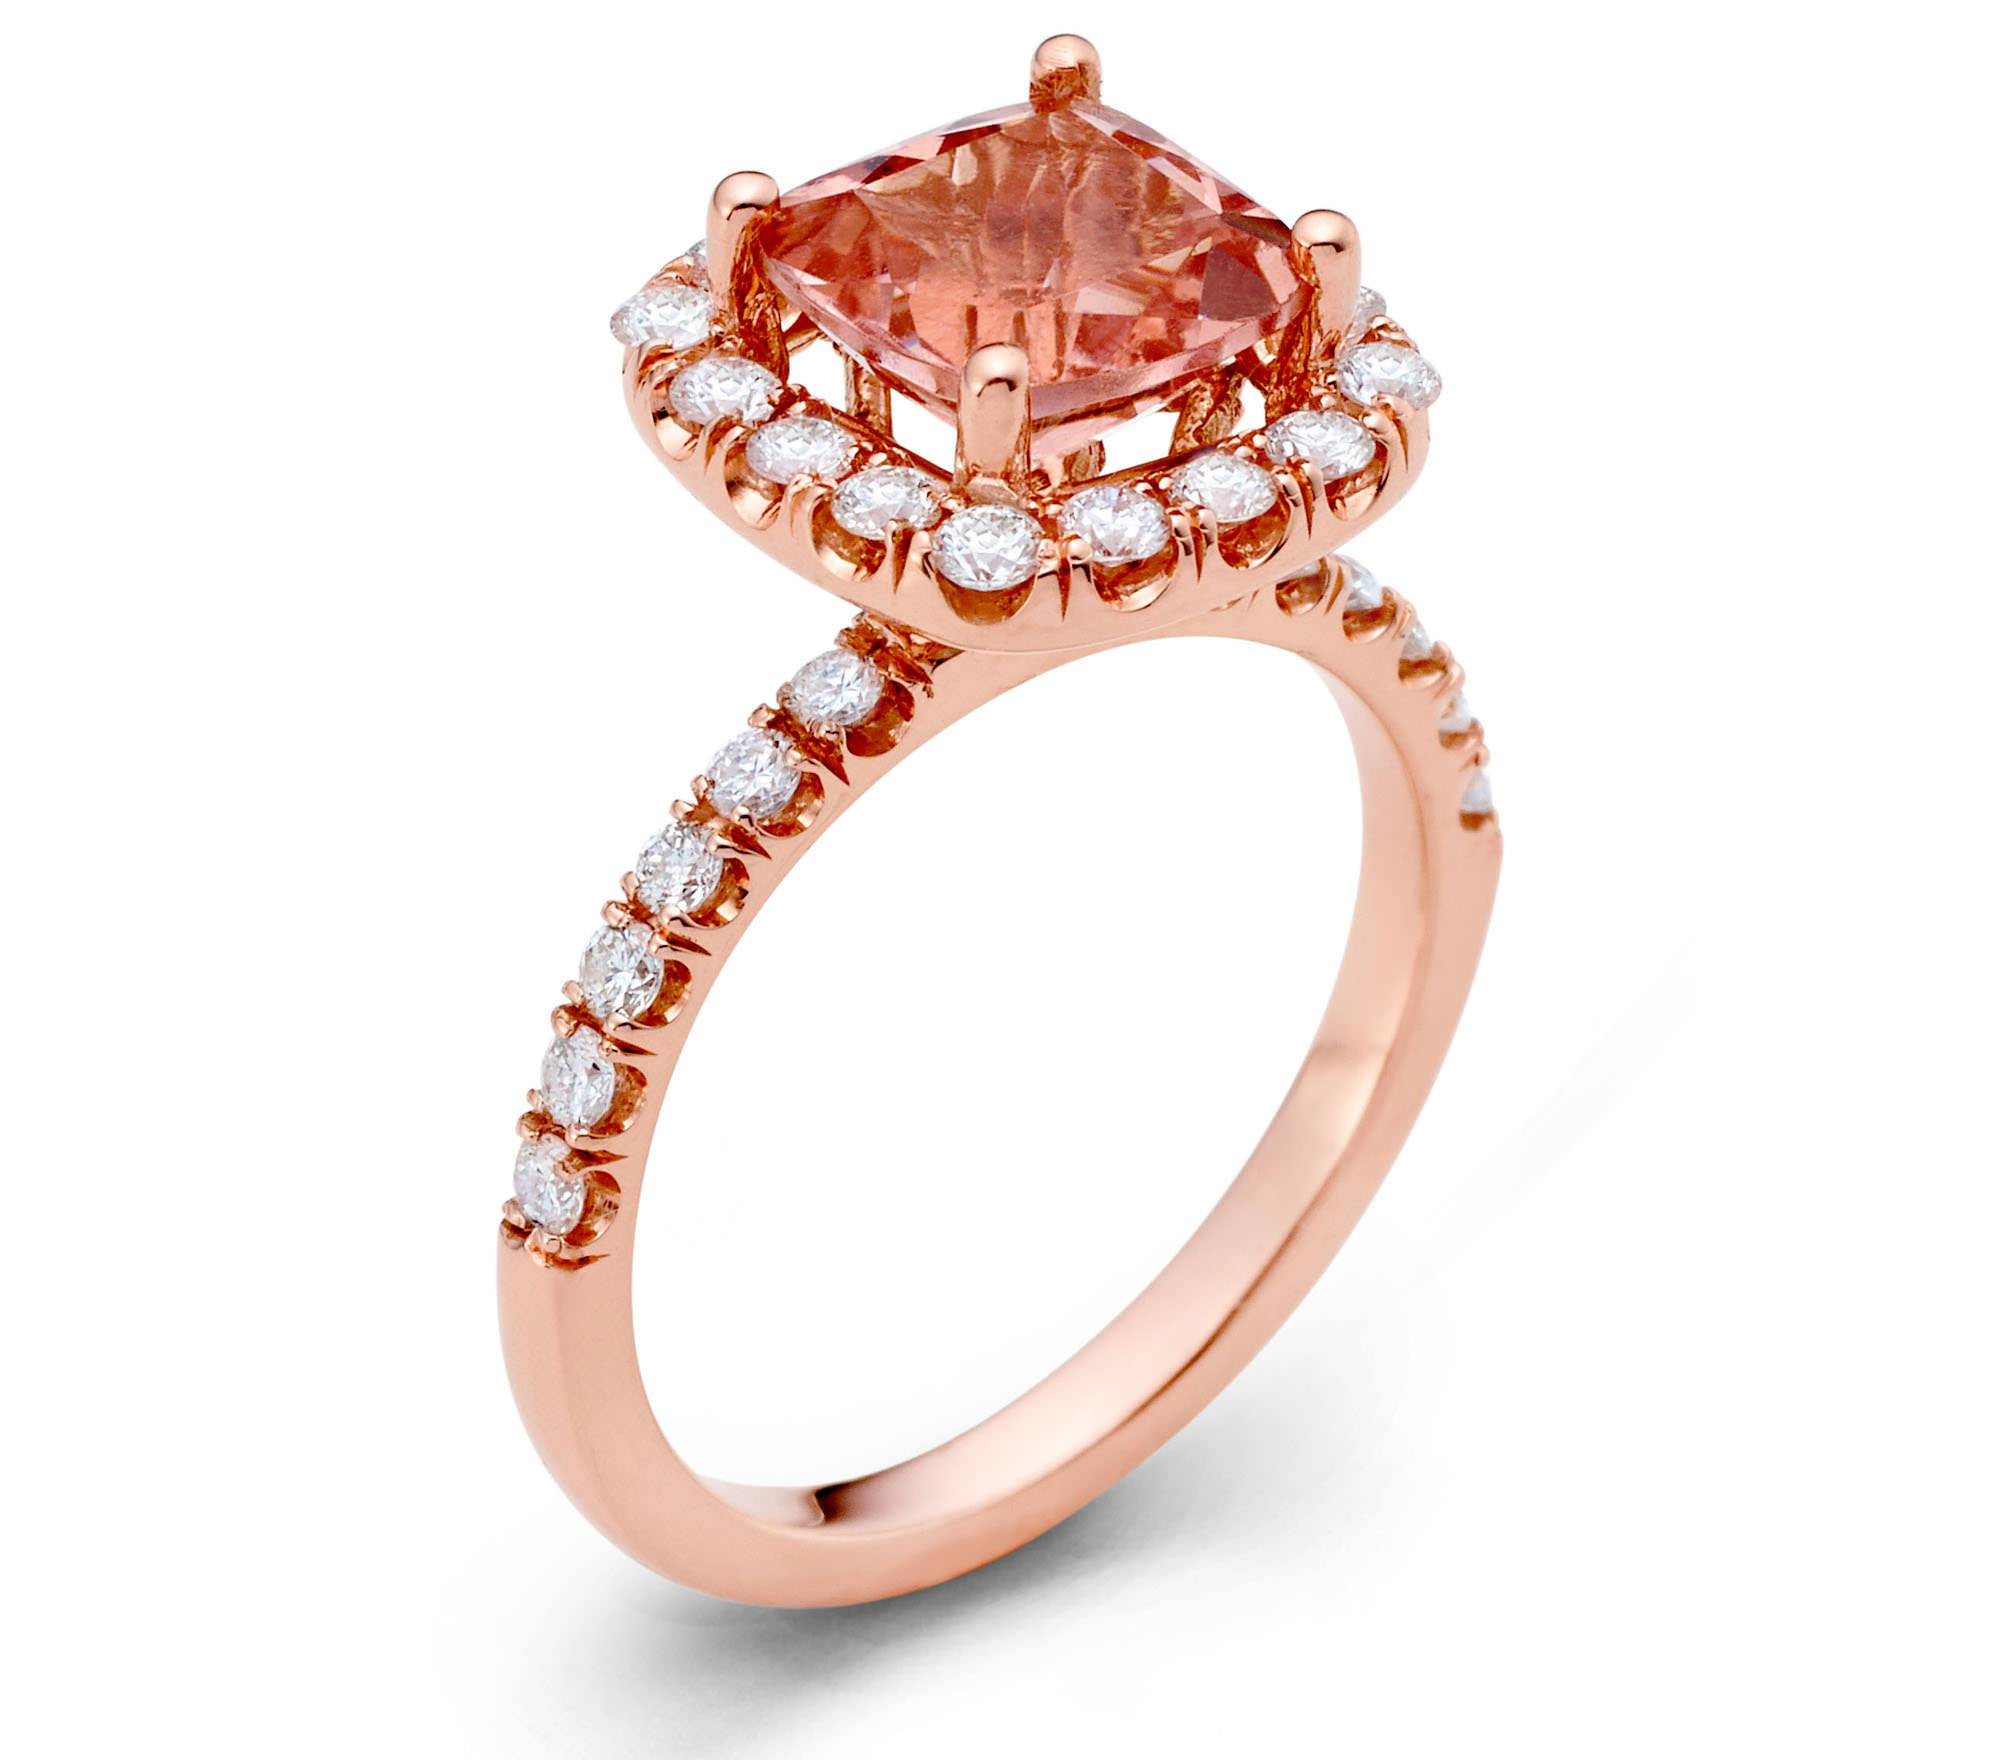 Majestic Art Design morganite and diamond ring | JCK On Your Market